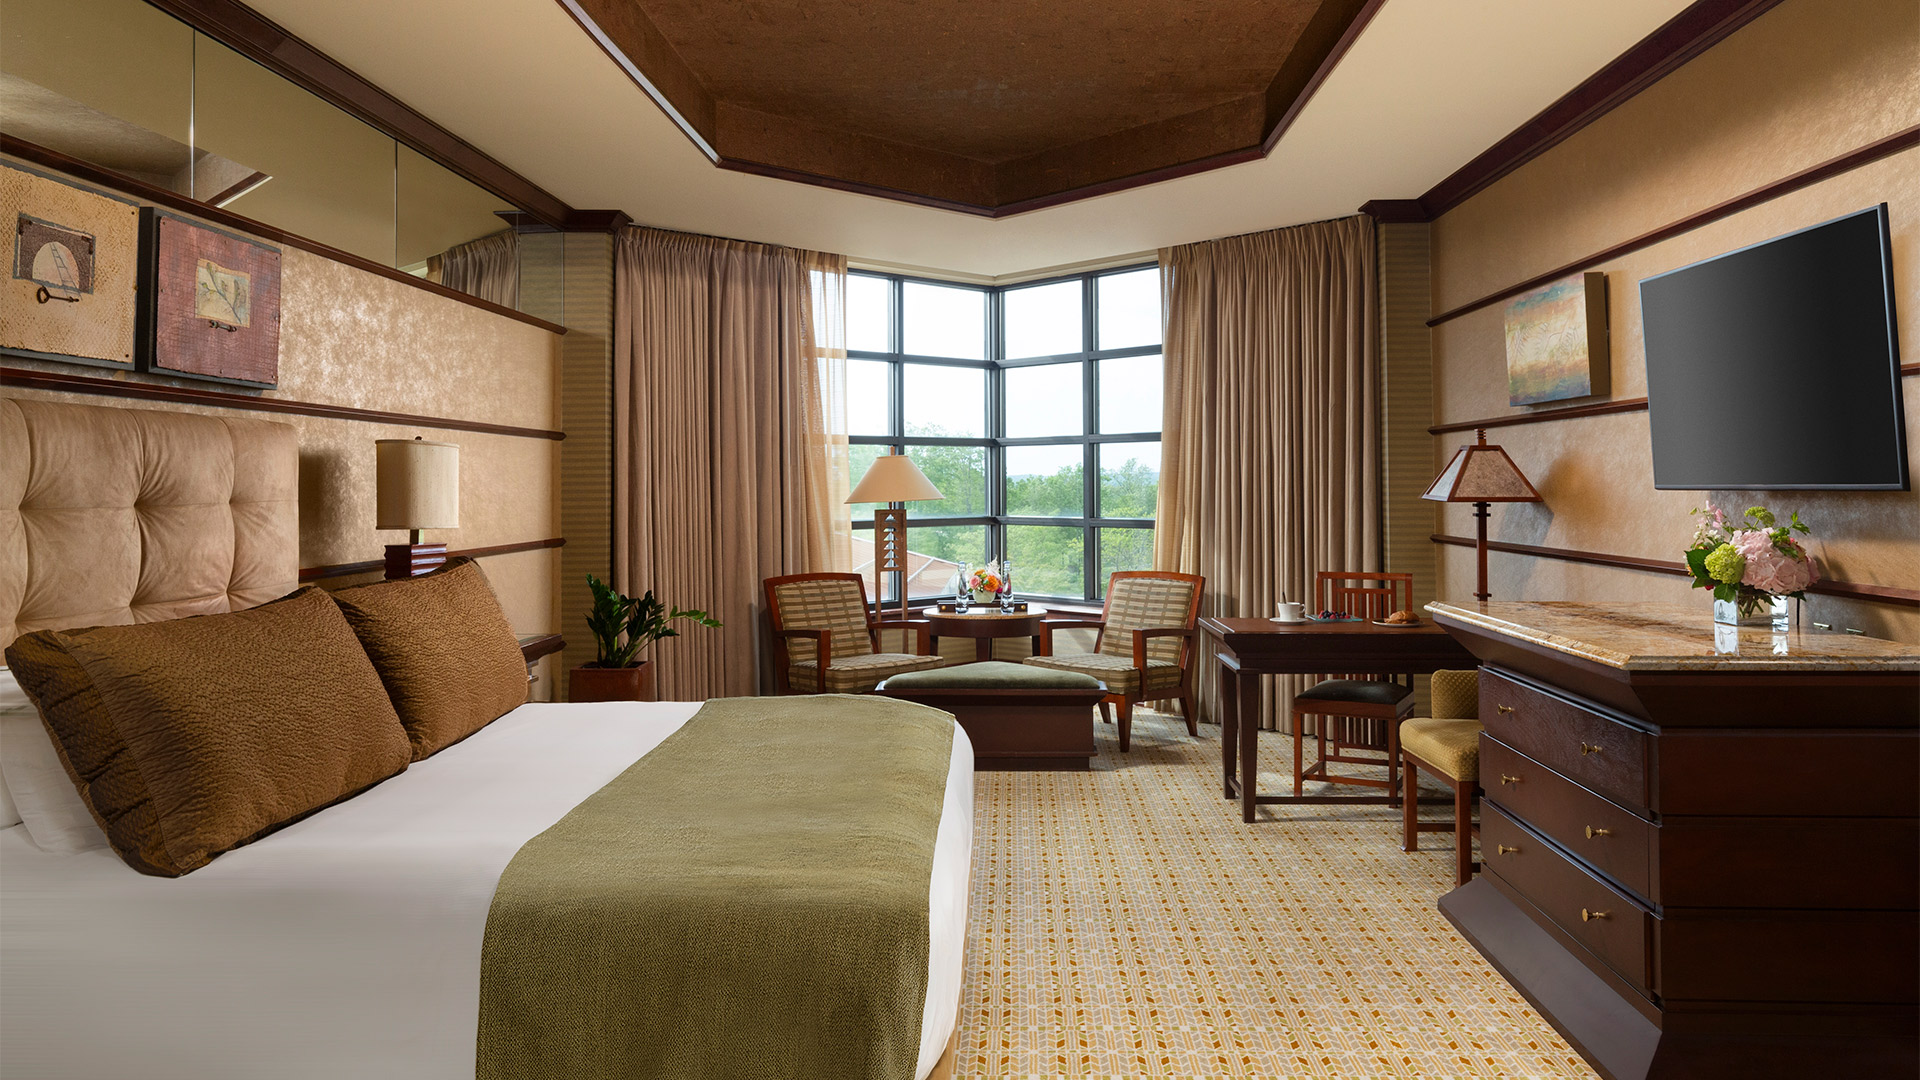 an interior shot of Falling Rock's luxury king room. There is a bed with a plush headboard and white, green and brown bedding. There is a sitting area with a table and dresser across from the bed. There are windows overlooking the resort grounds.